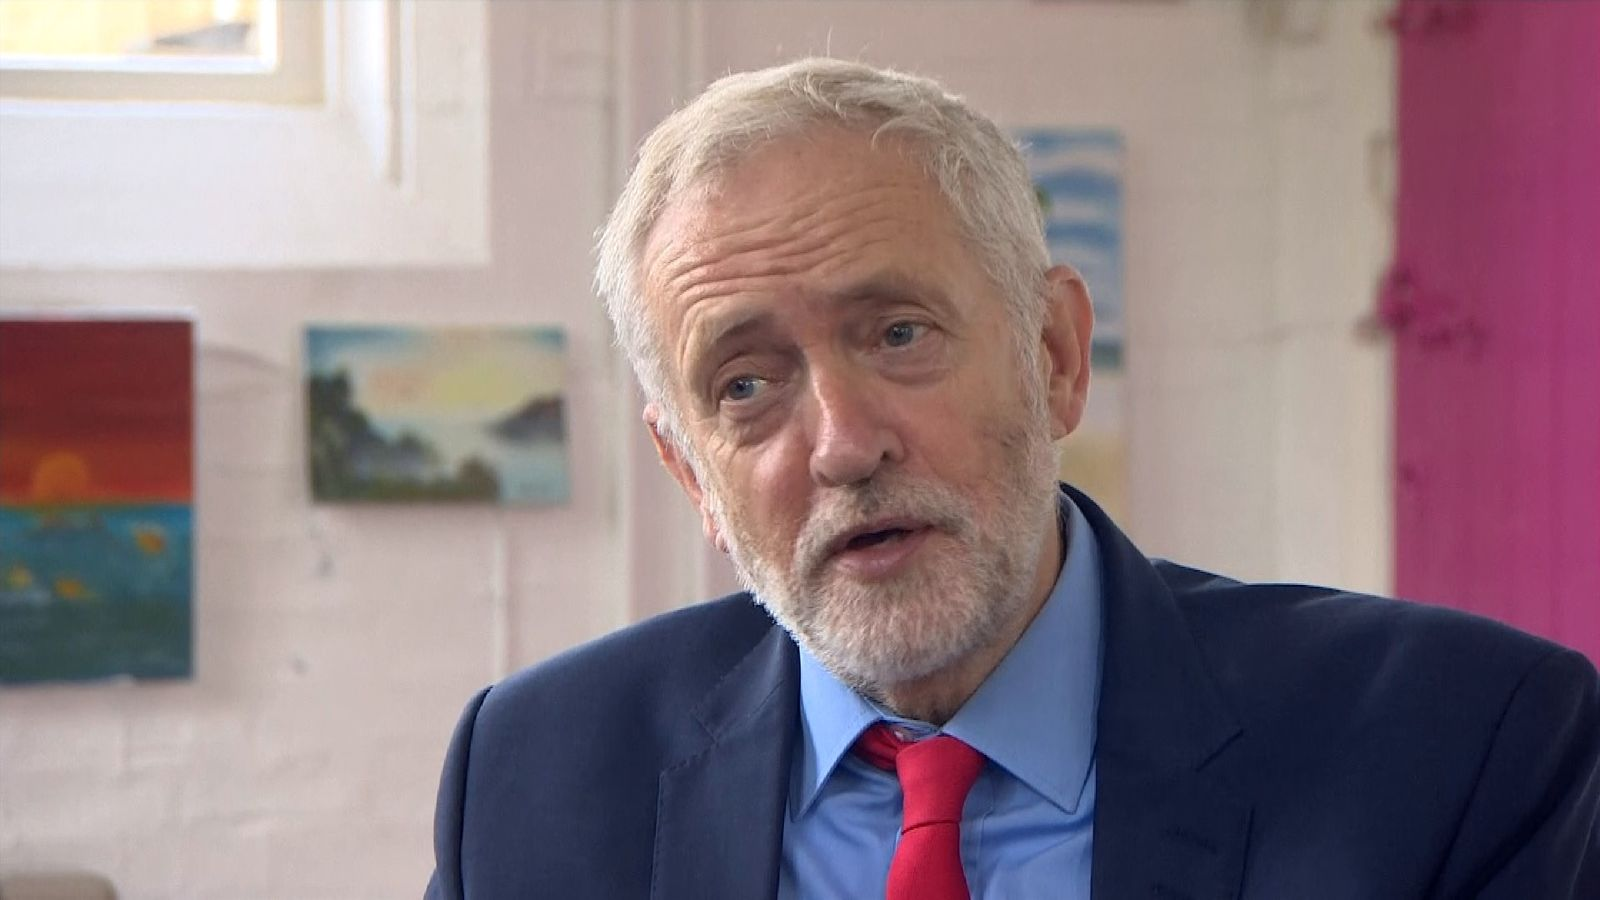 Jeremy Corbyn refuses to say he would have ordered Sally Jones airstrike